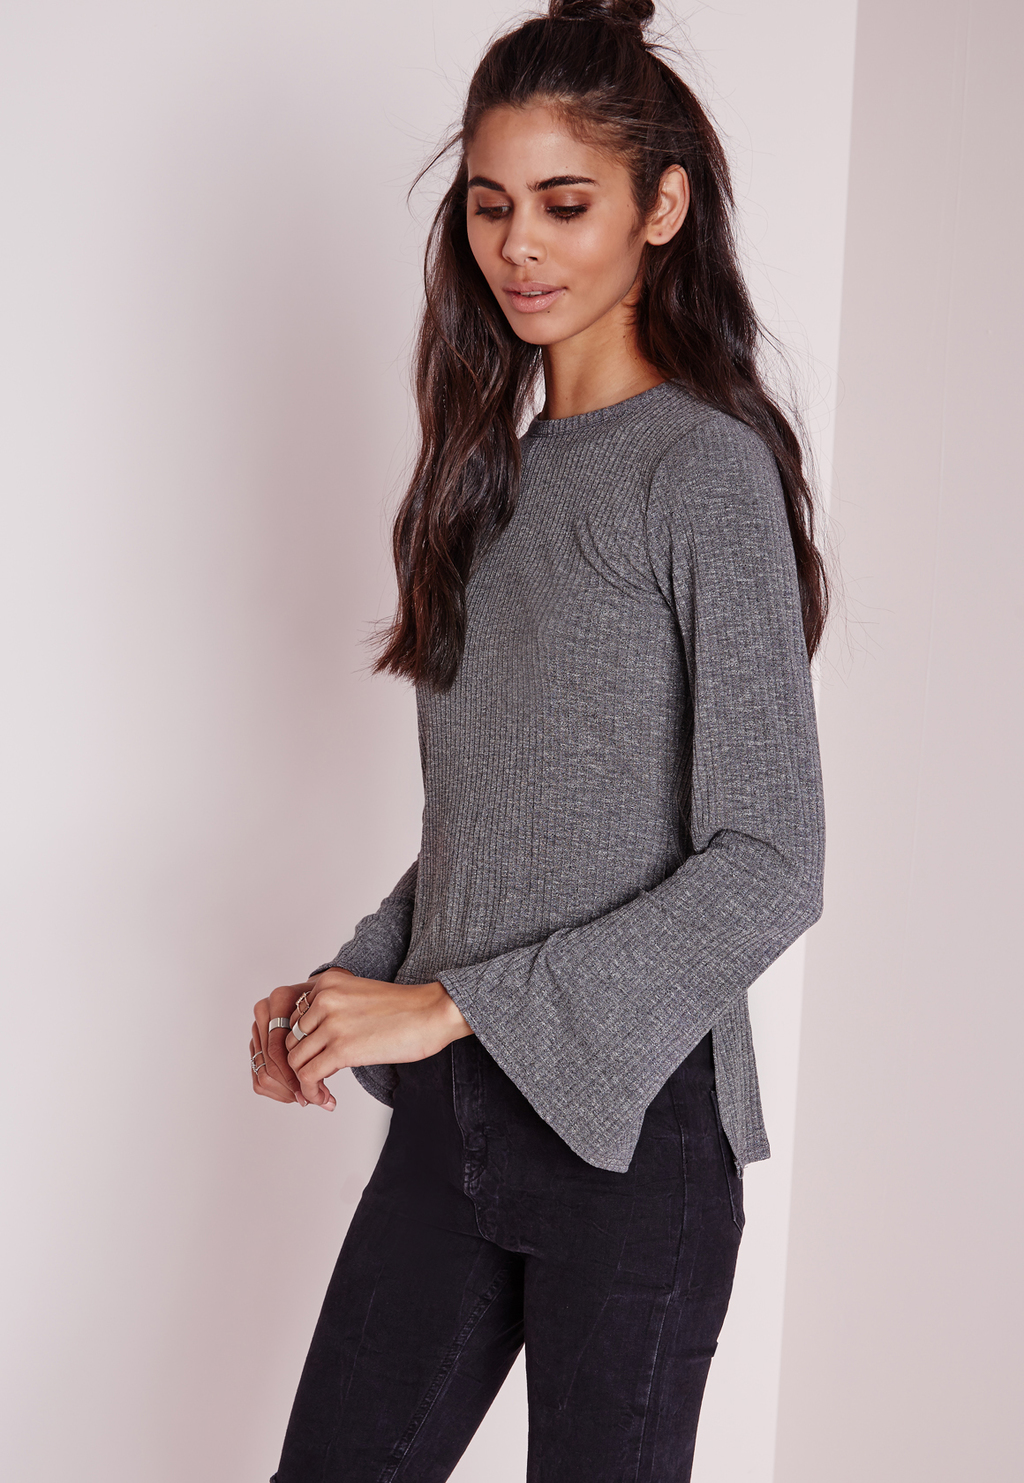 Ribbed Longline Bell Sleeve Top Grey, Grey - sleeve style: bell sleeve; pattern: plain; predominant colour: mid grey; occasions: casual, creative work; length: standard; style: top; fibres: polyester/polyamide - stretch; fit: body skimming; neckline: crew; sleeve length: long sleeve; pattern type: fabric; pattern size: standard; texture group: jersey - stretchy/drapey; season: a/w 2015; wardrobe: basic